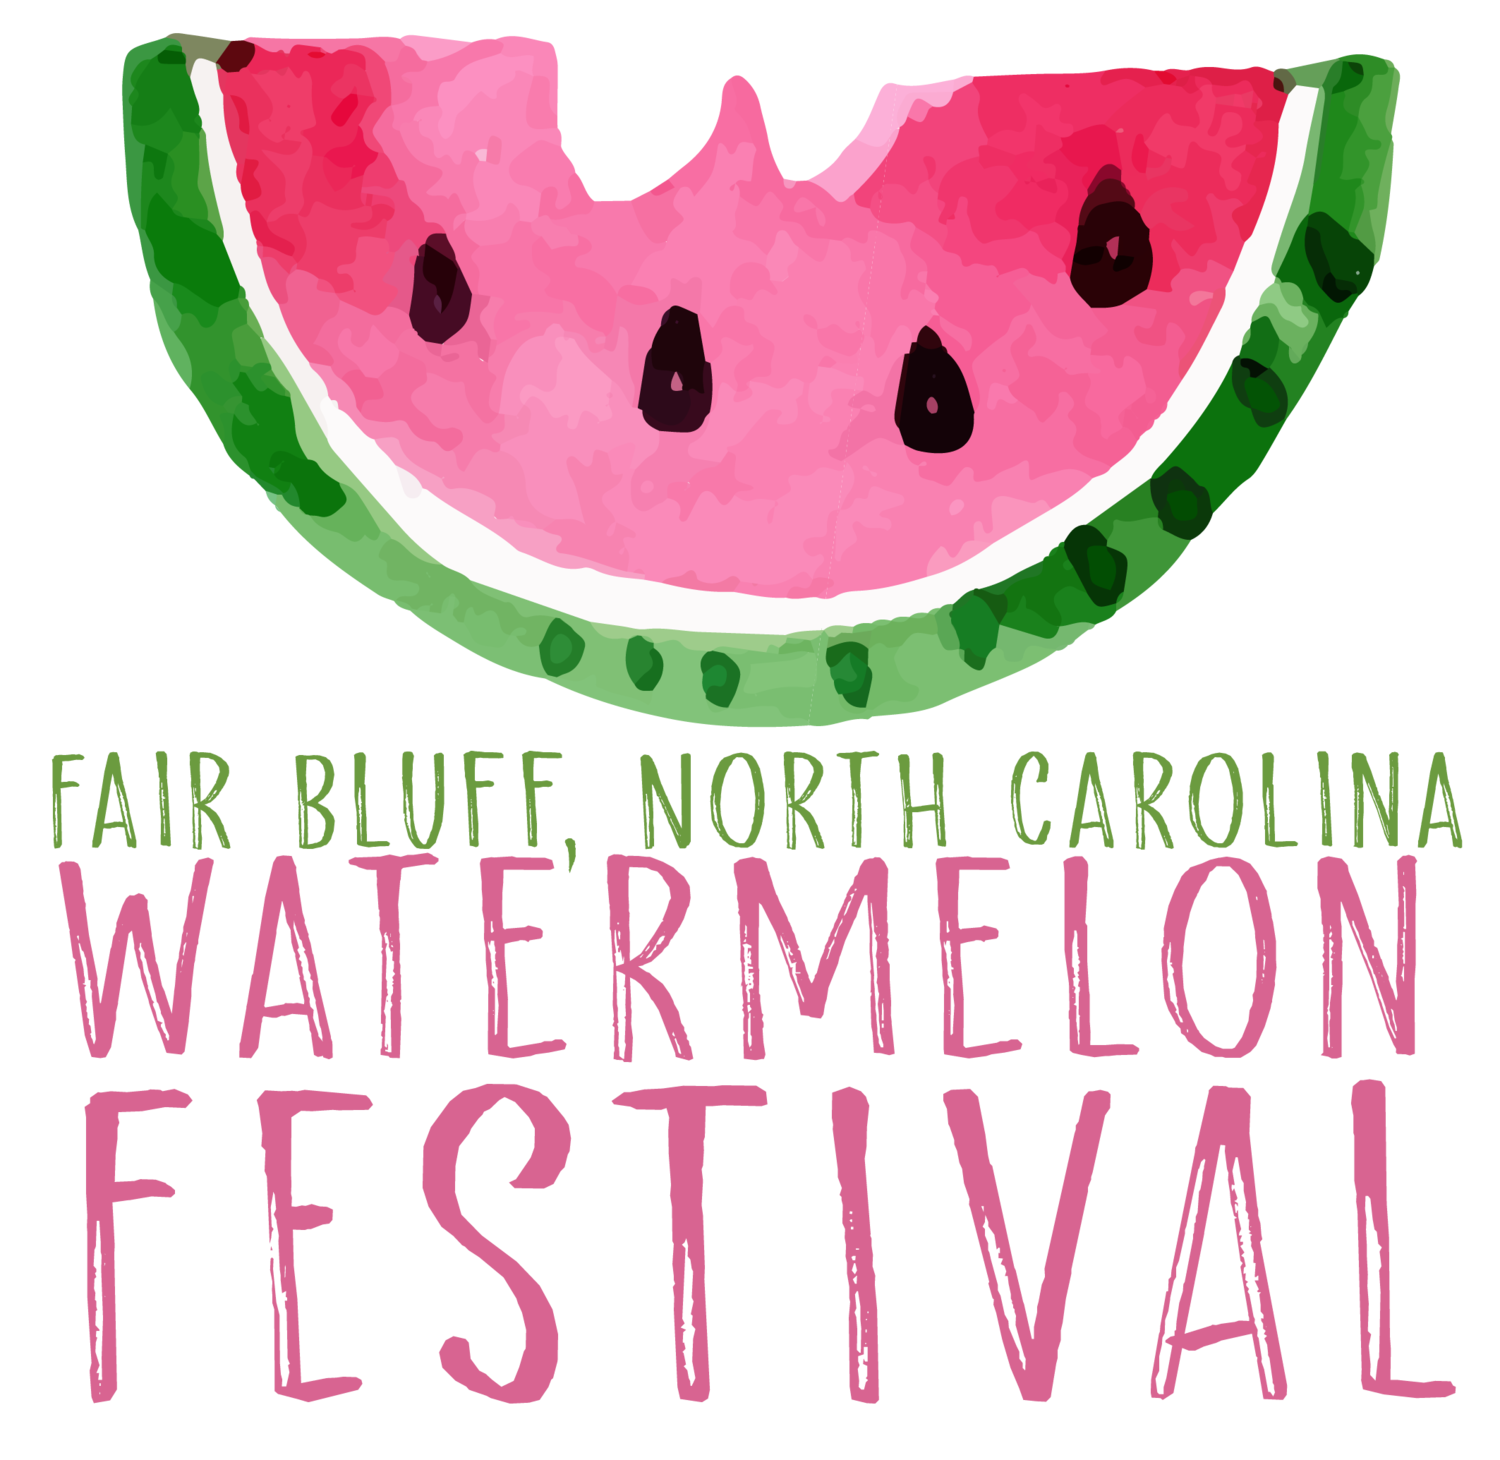 Fair Bluff Watermelon Festival